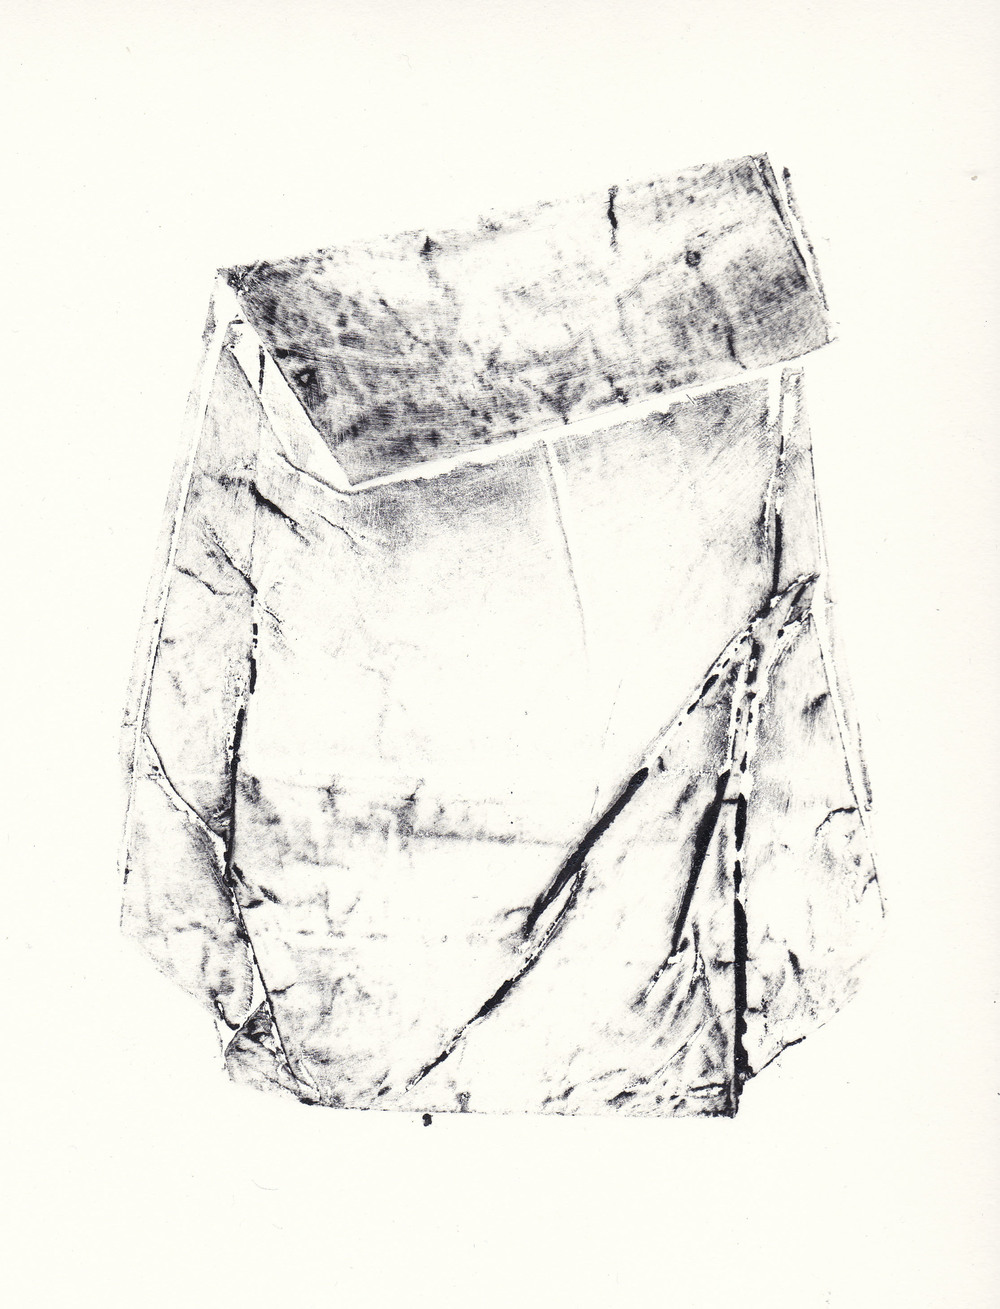 Topography of a Flour Bag I   collagraph print  2012